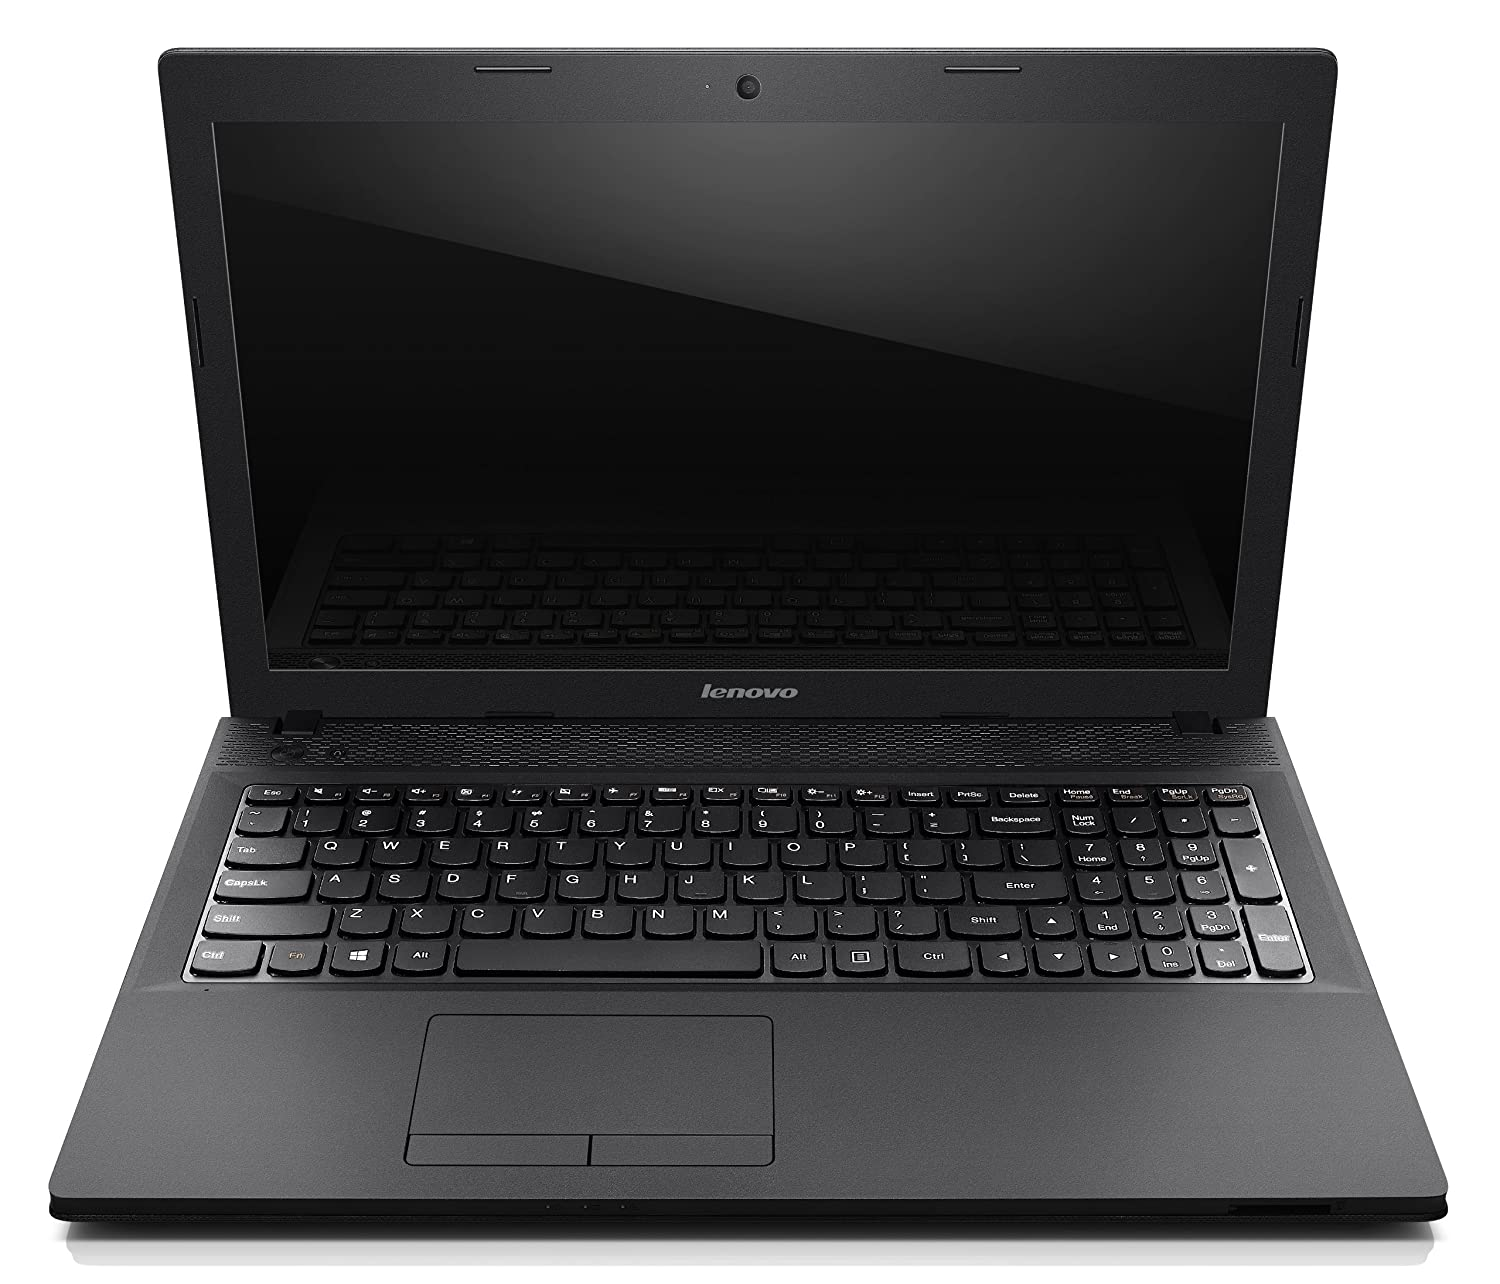 Amazon Lenovo G505 15 6 Inch Laptop Black puters & Accessories